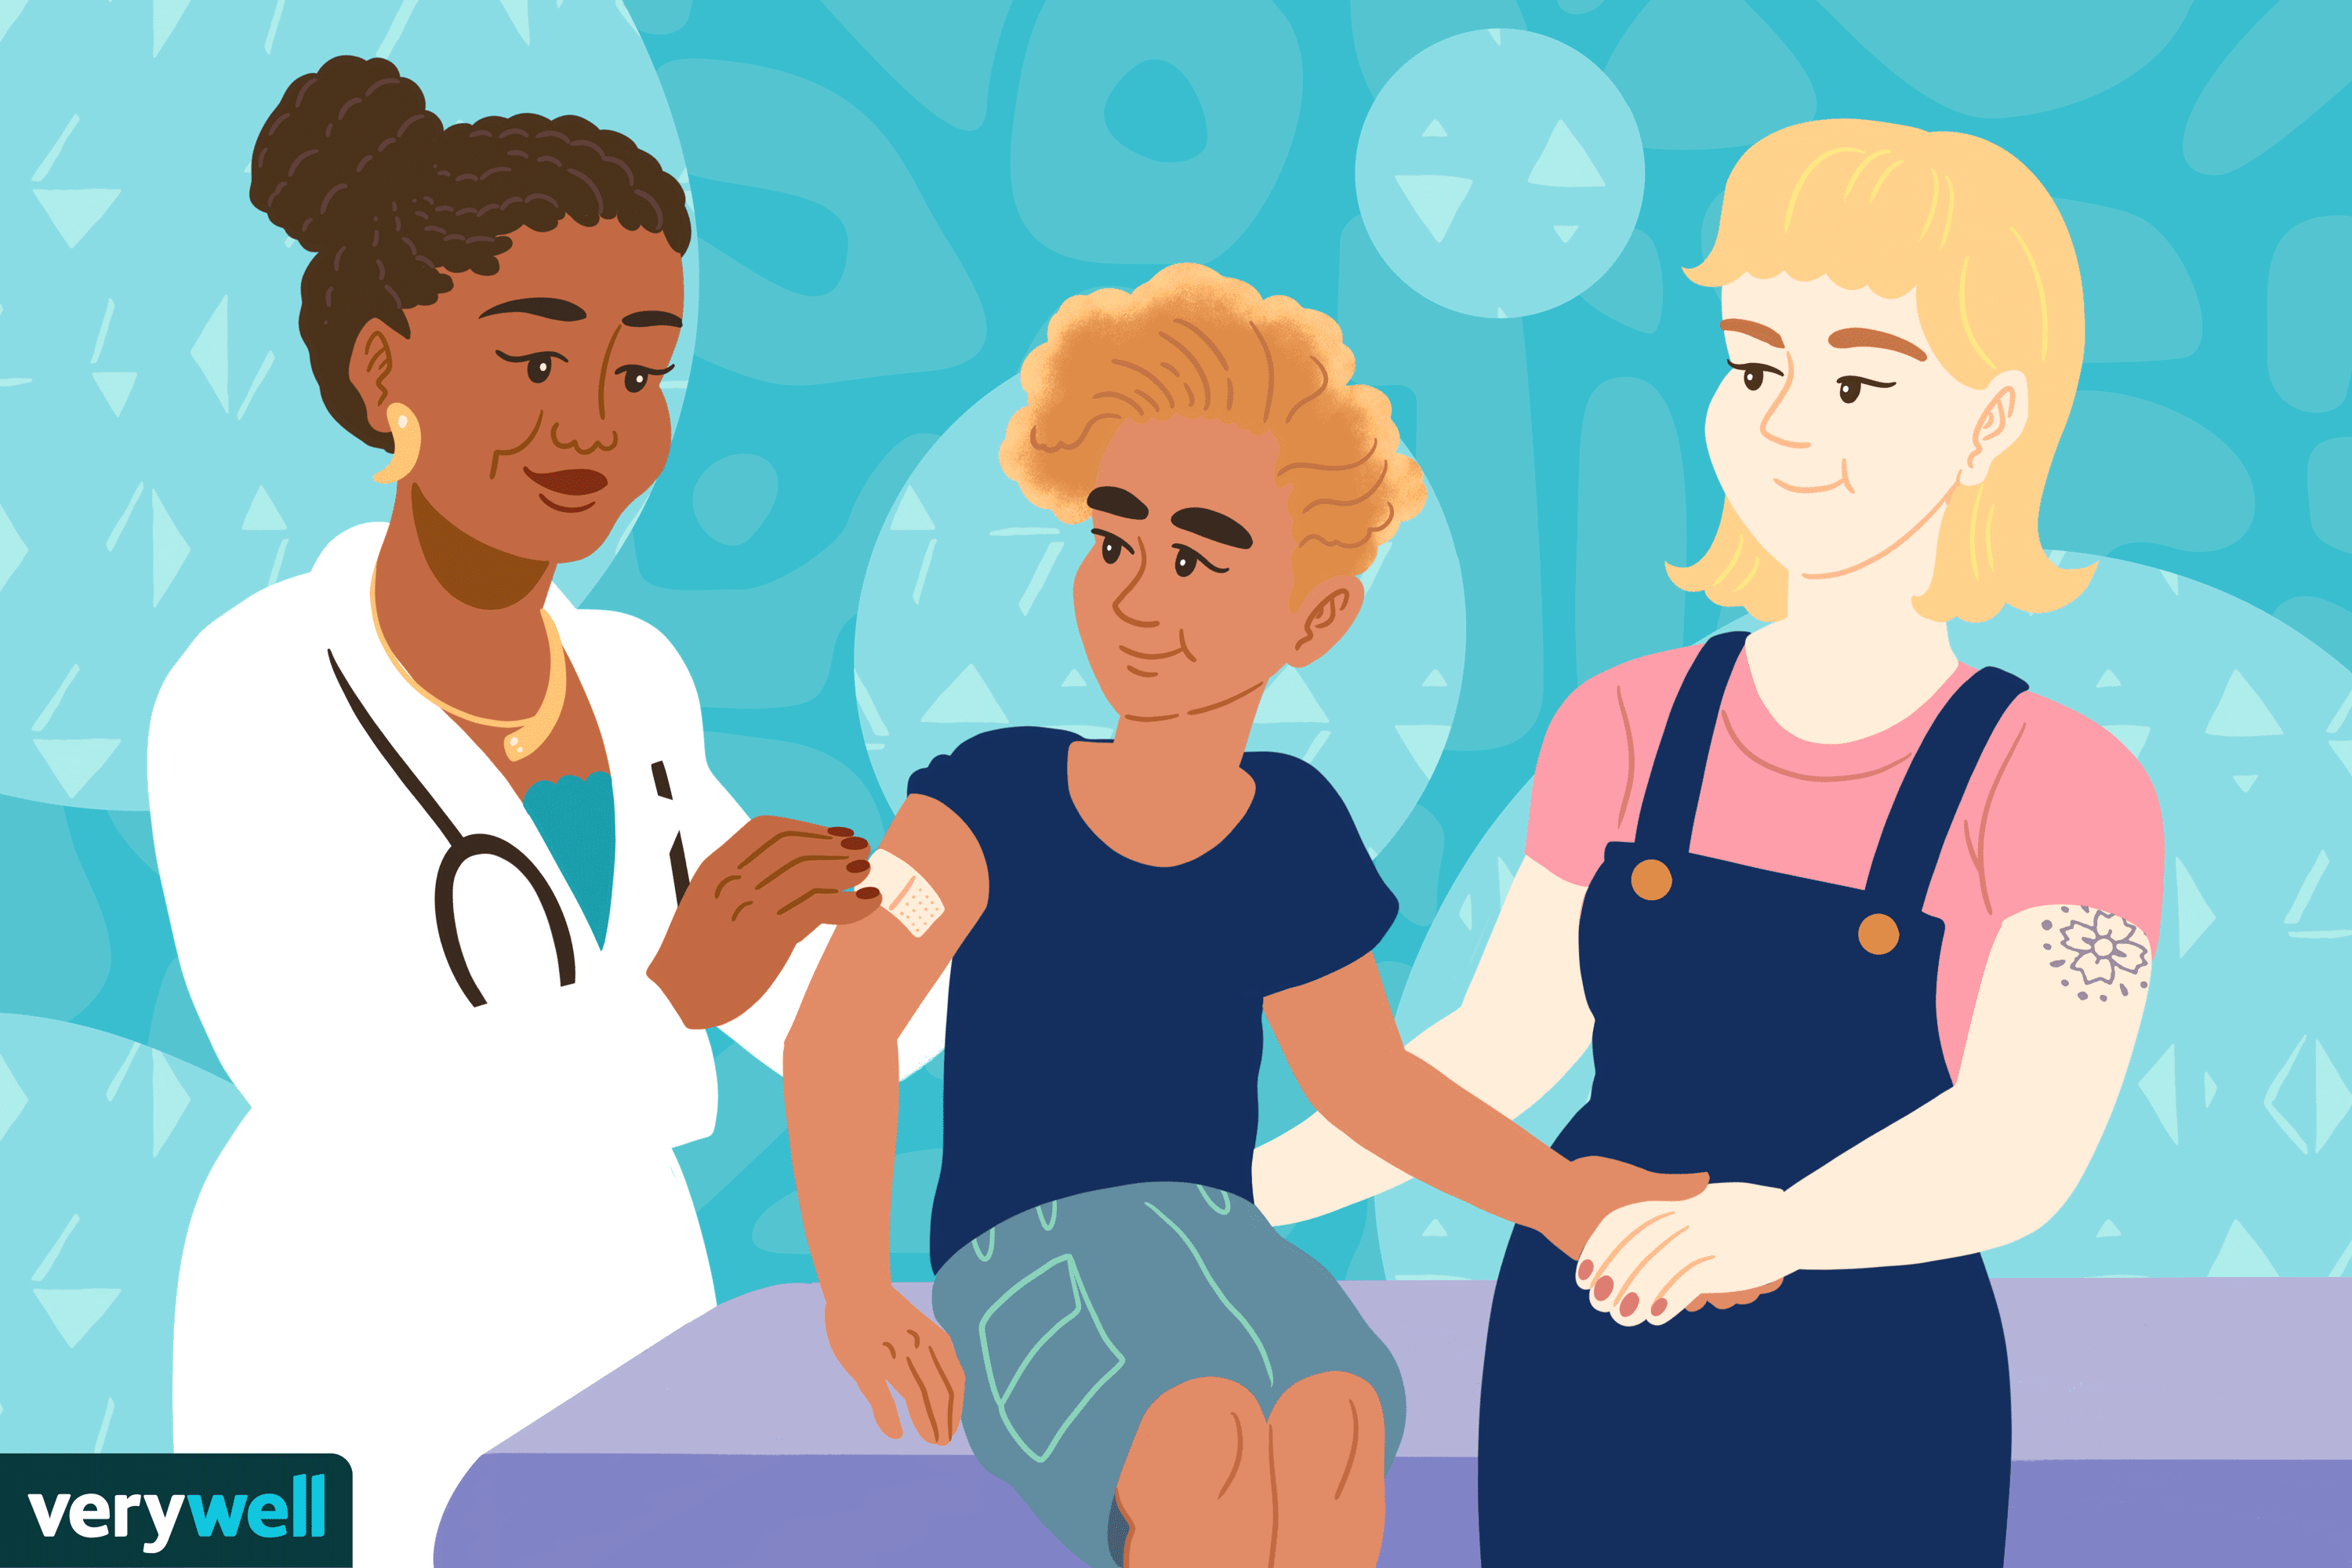 Illustration of child at the doctor getting a shit